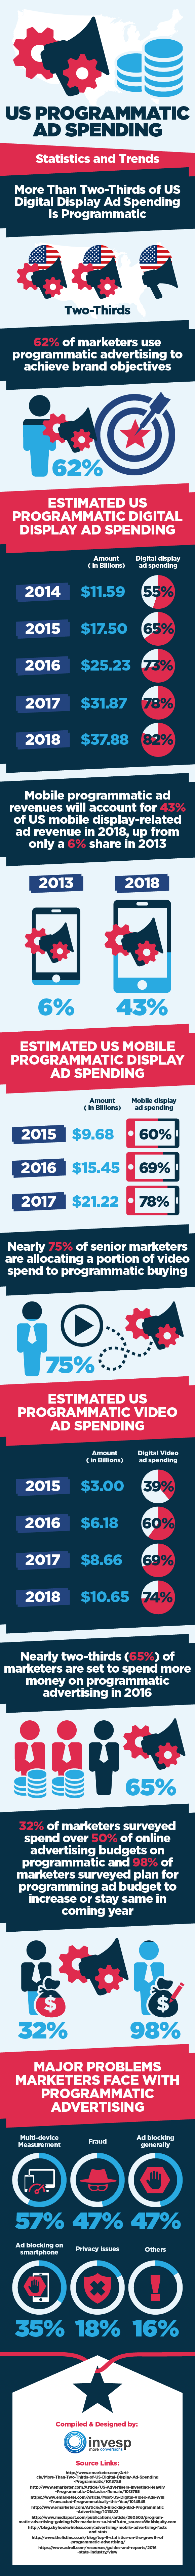 US programmatic ad spending